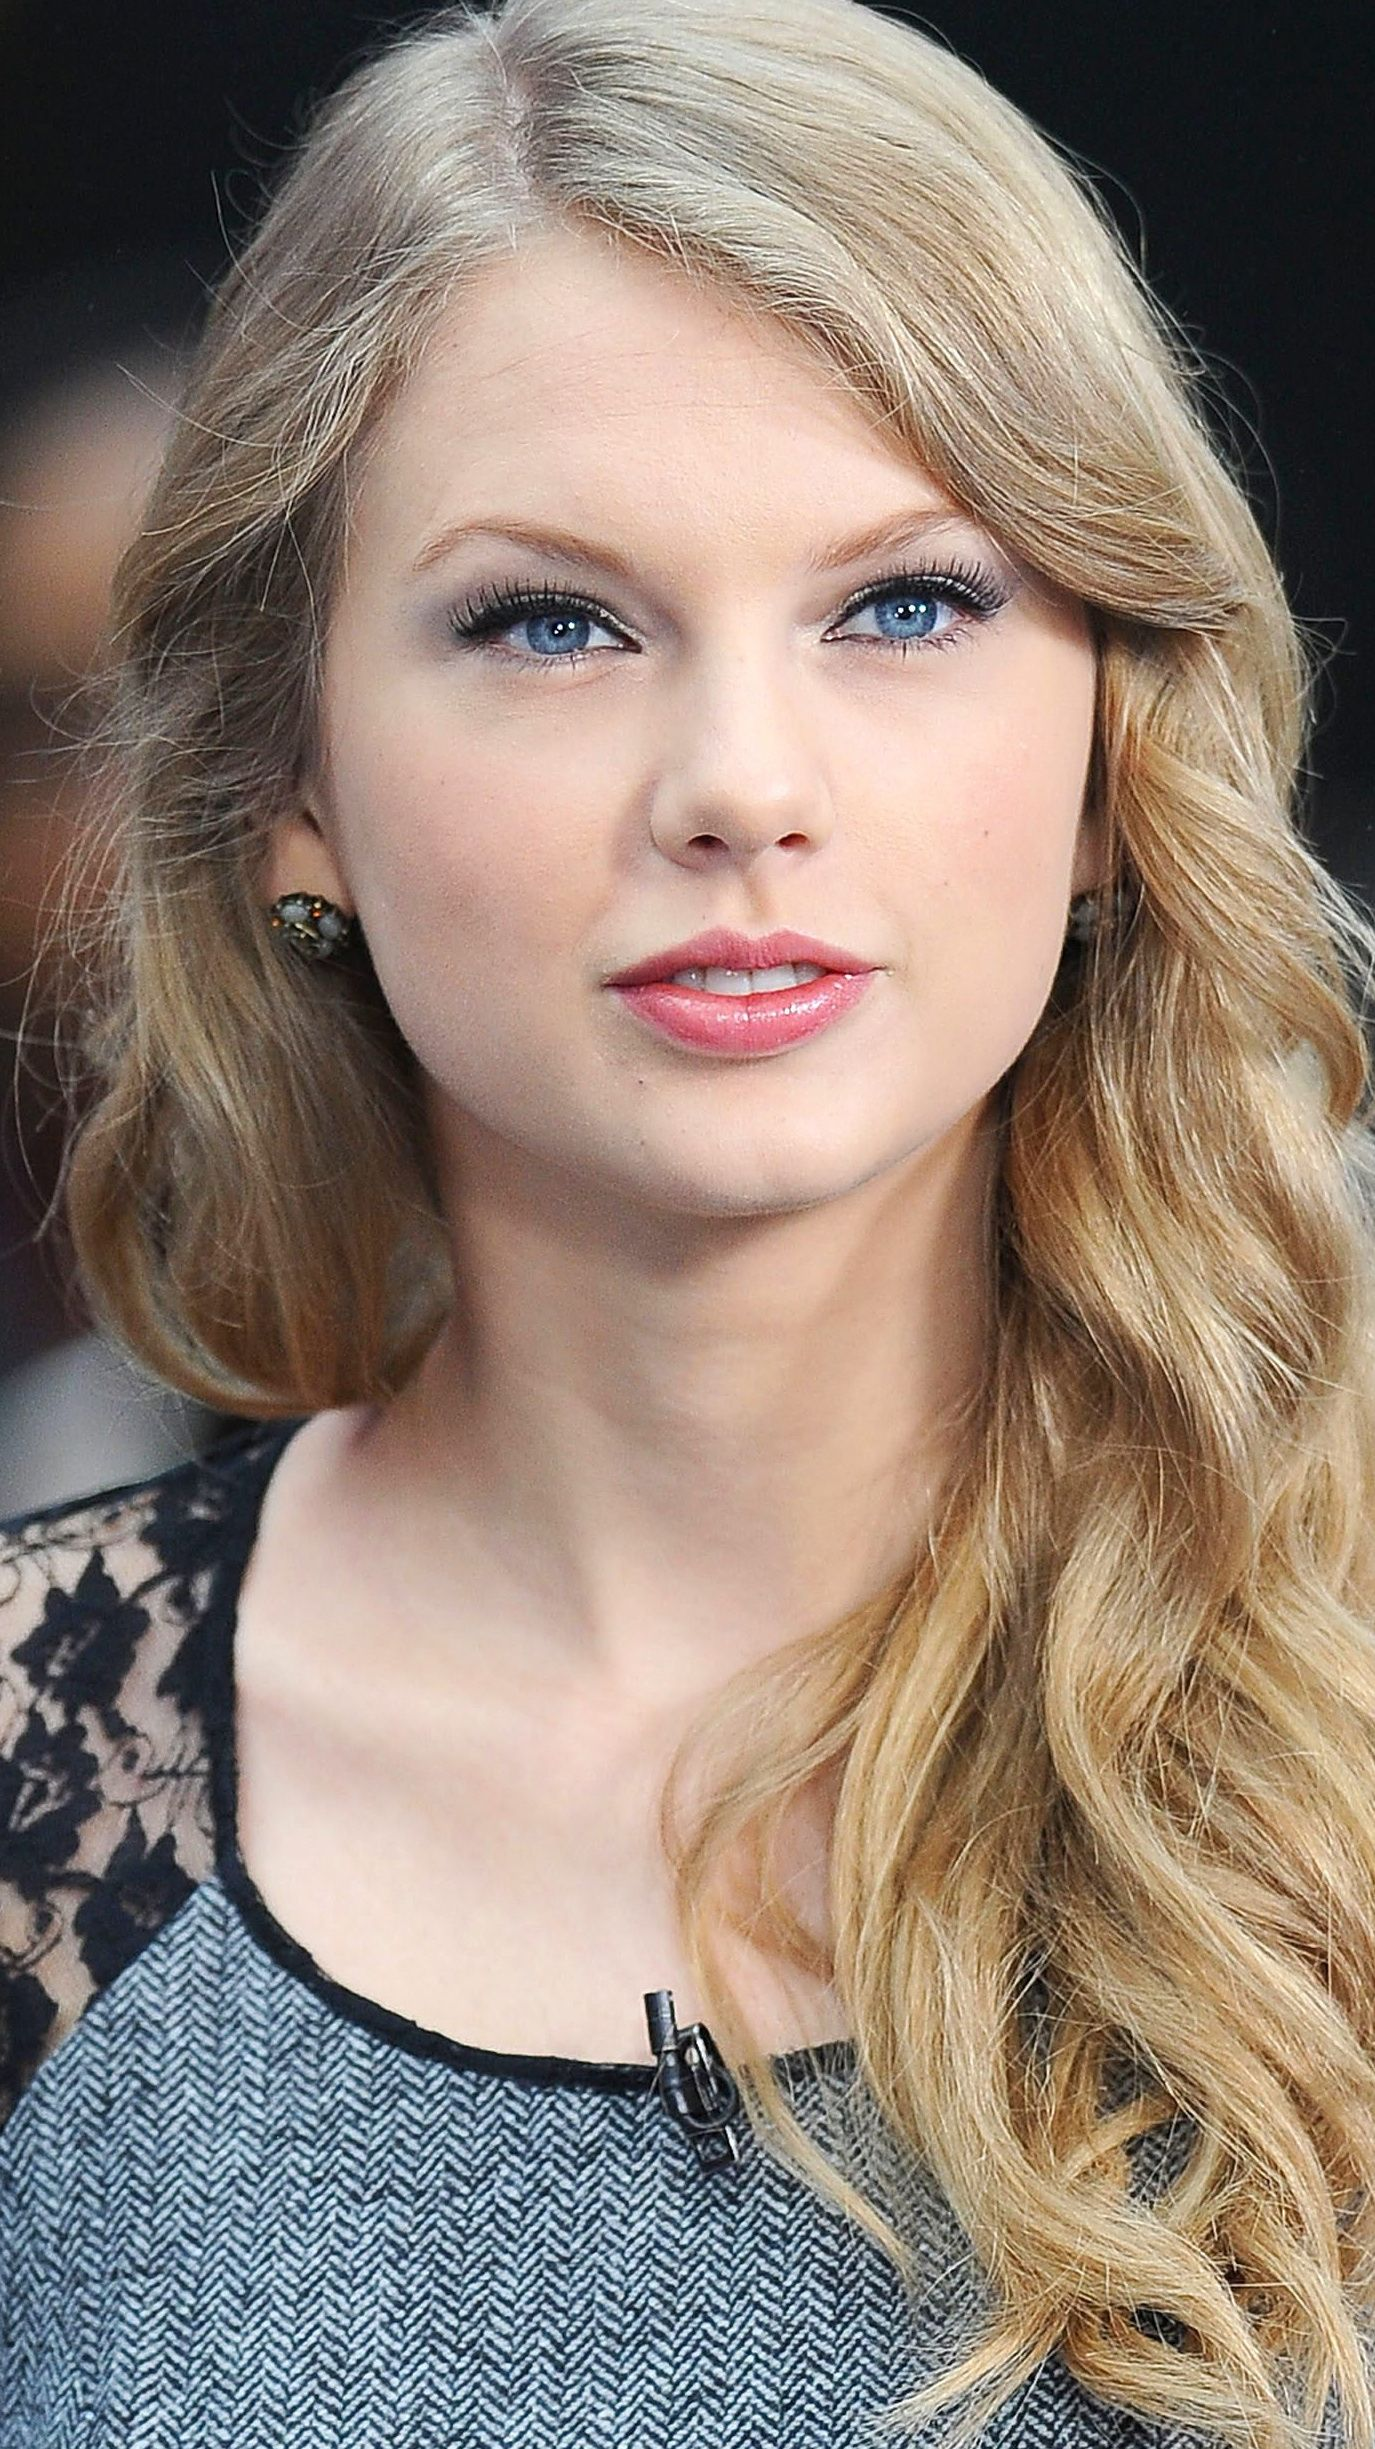 Taylor Swift Beautiful Photos Taylor Swift Age Womens Hairstyles Taylor Swift 2014